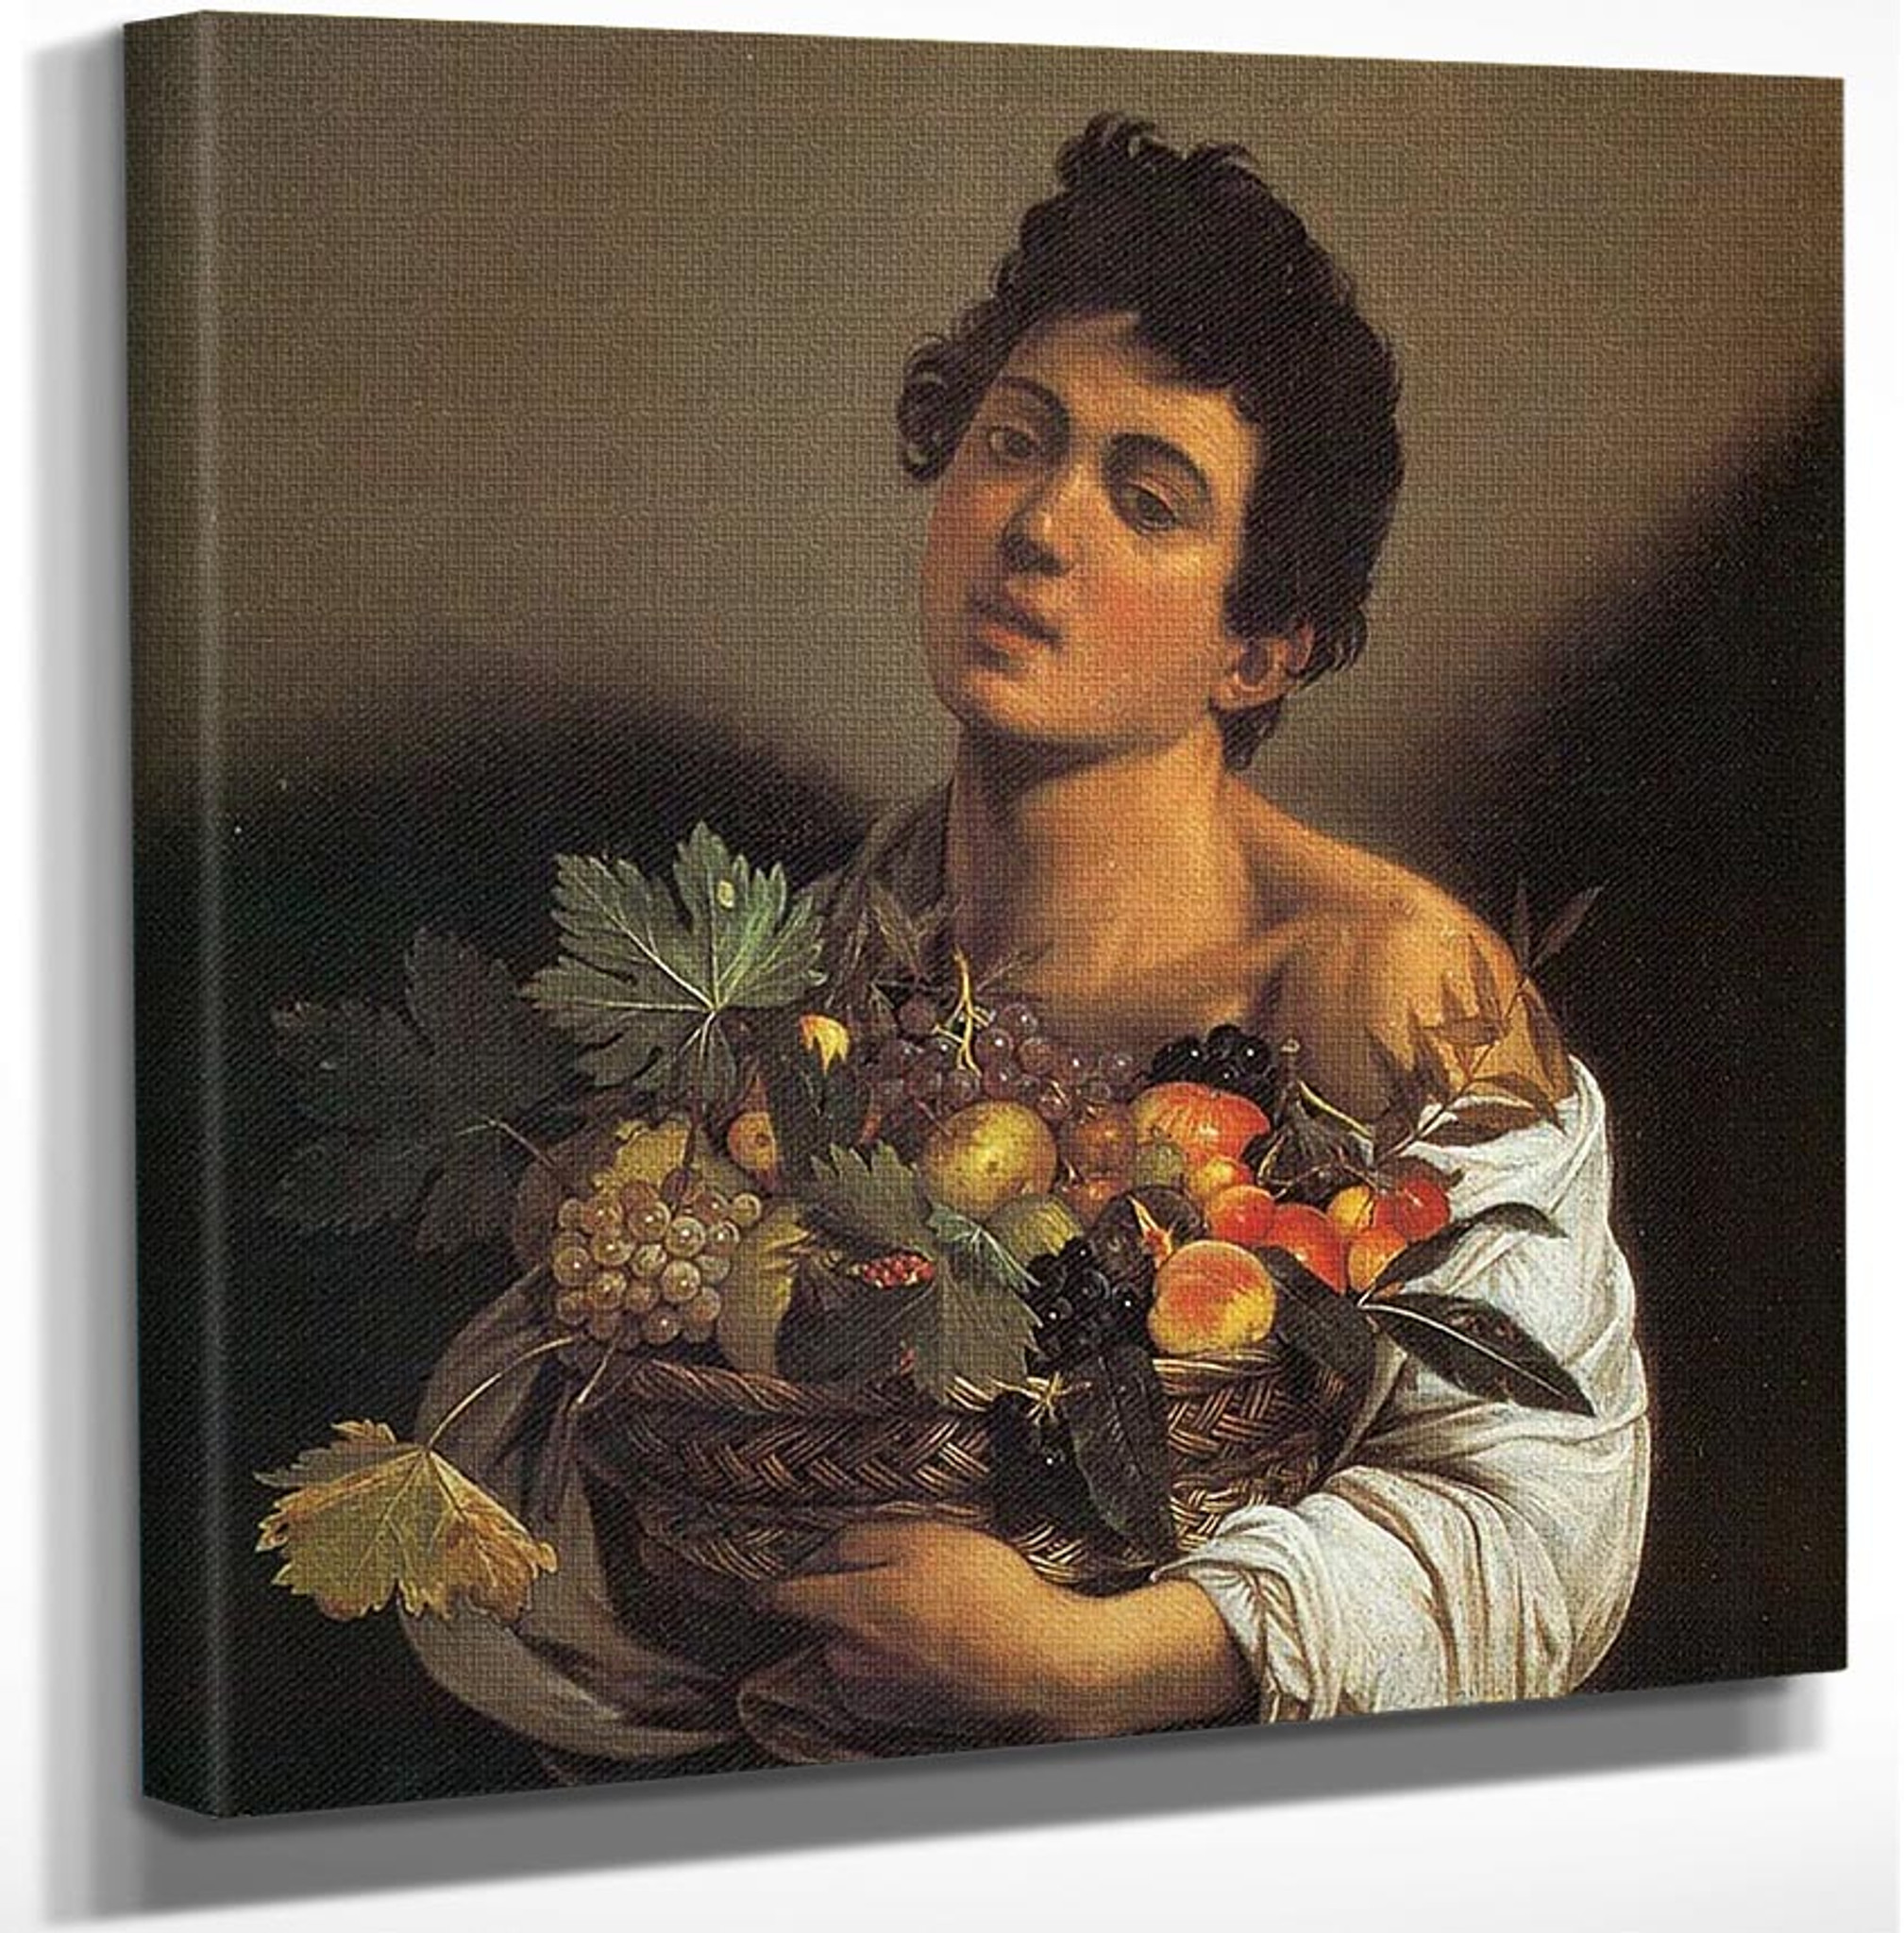 Basket of Fruit by Caravaggio Giclee Fine Art Print Repro on Canvas